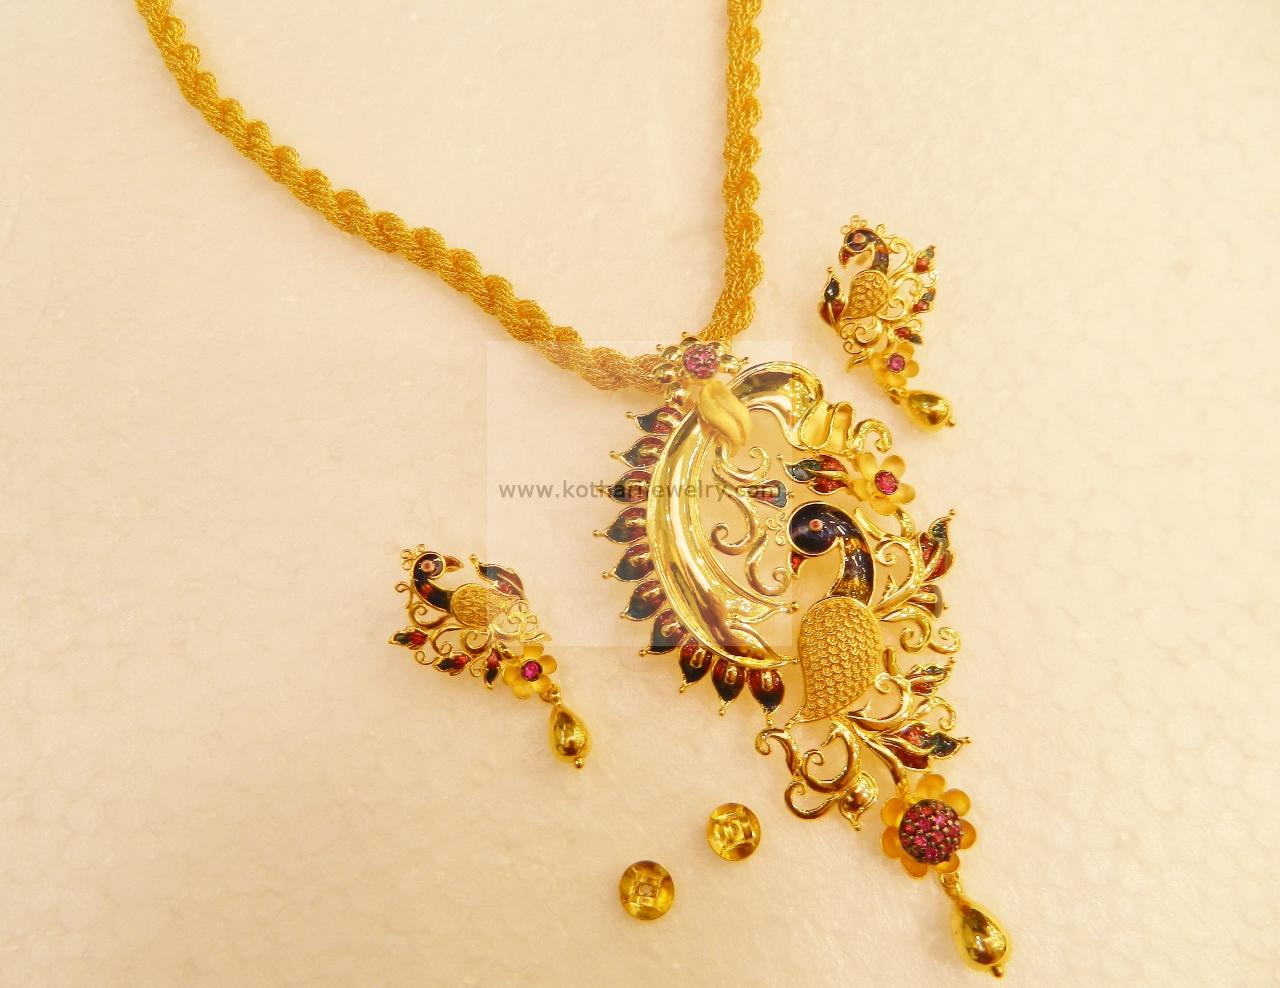 Necklaces / Harams - Gold Jewellery Necklaces / Harams (NK43704370 ...